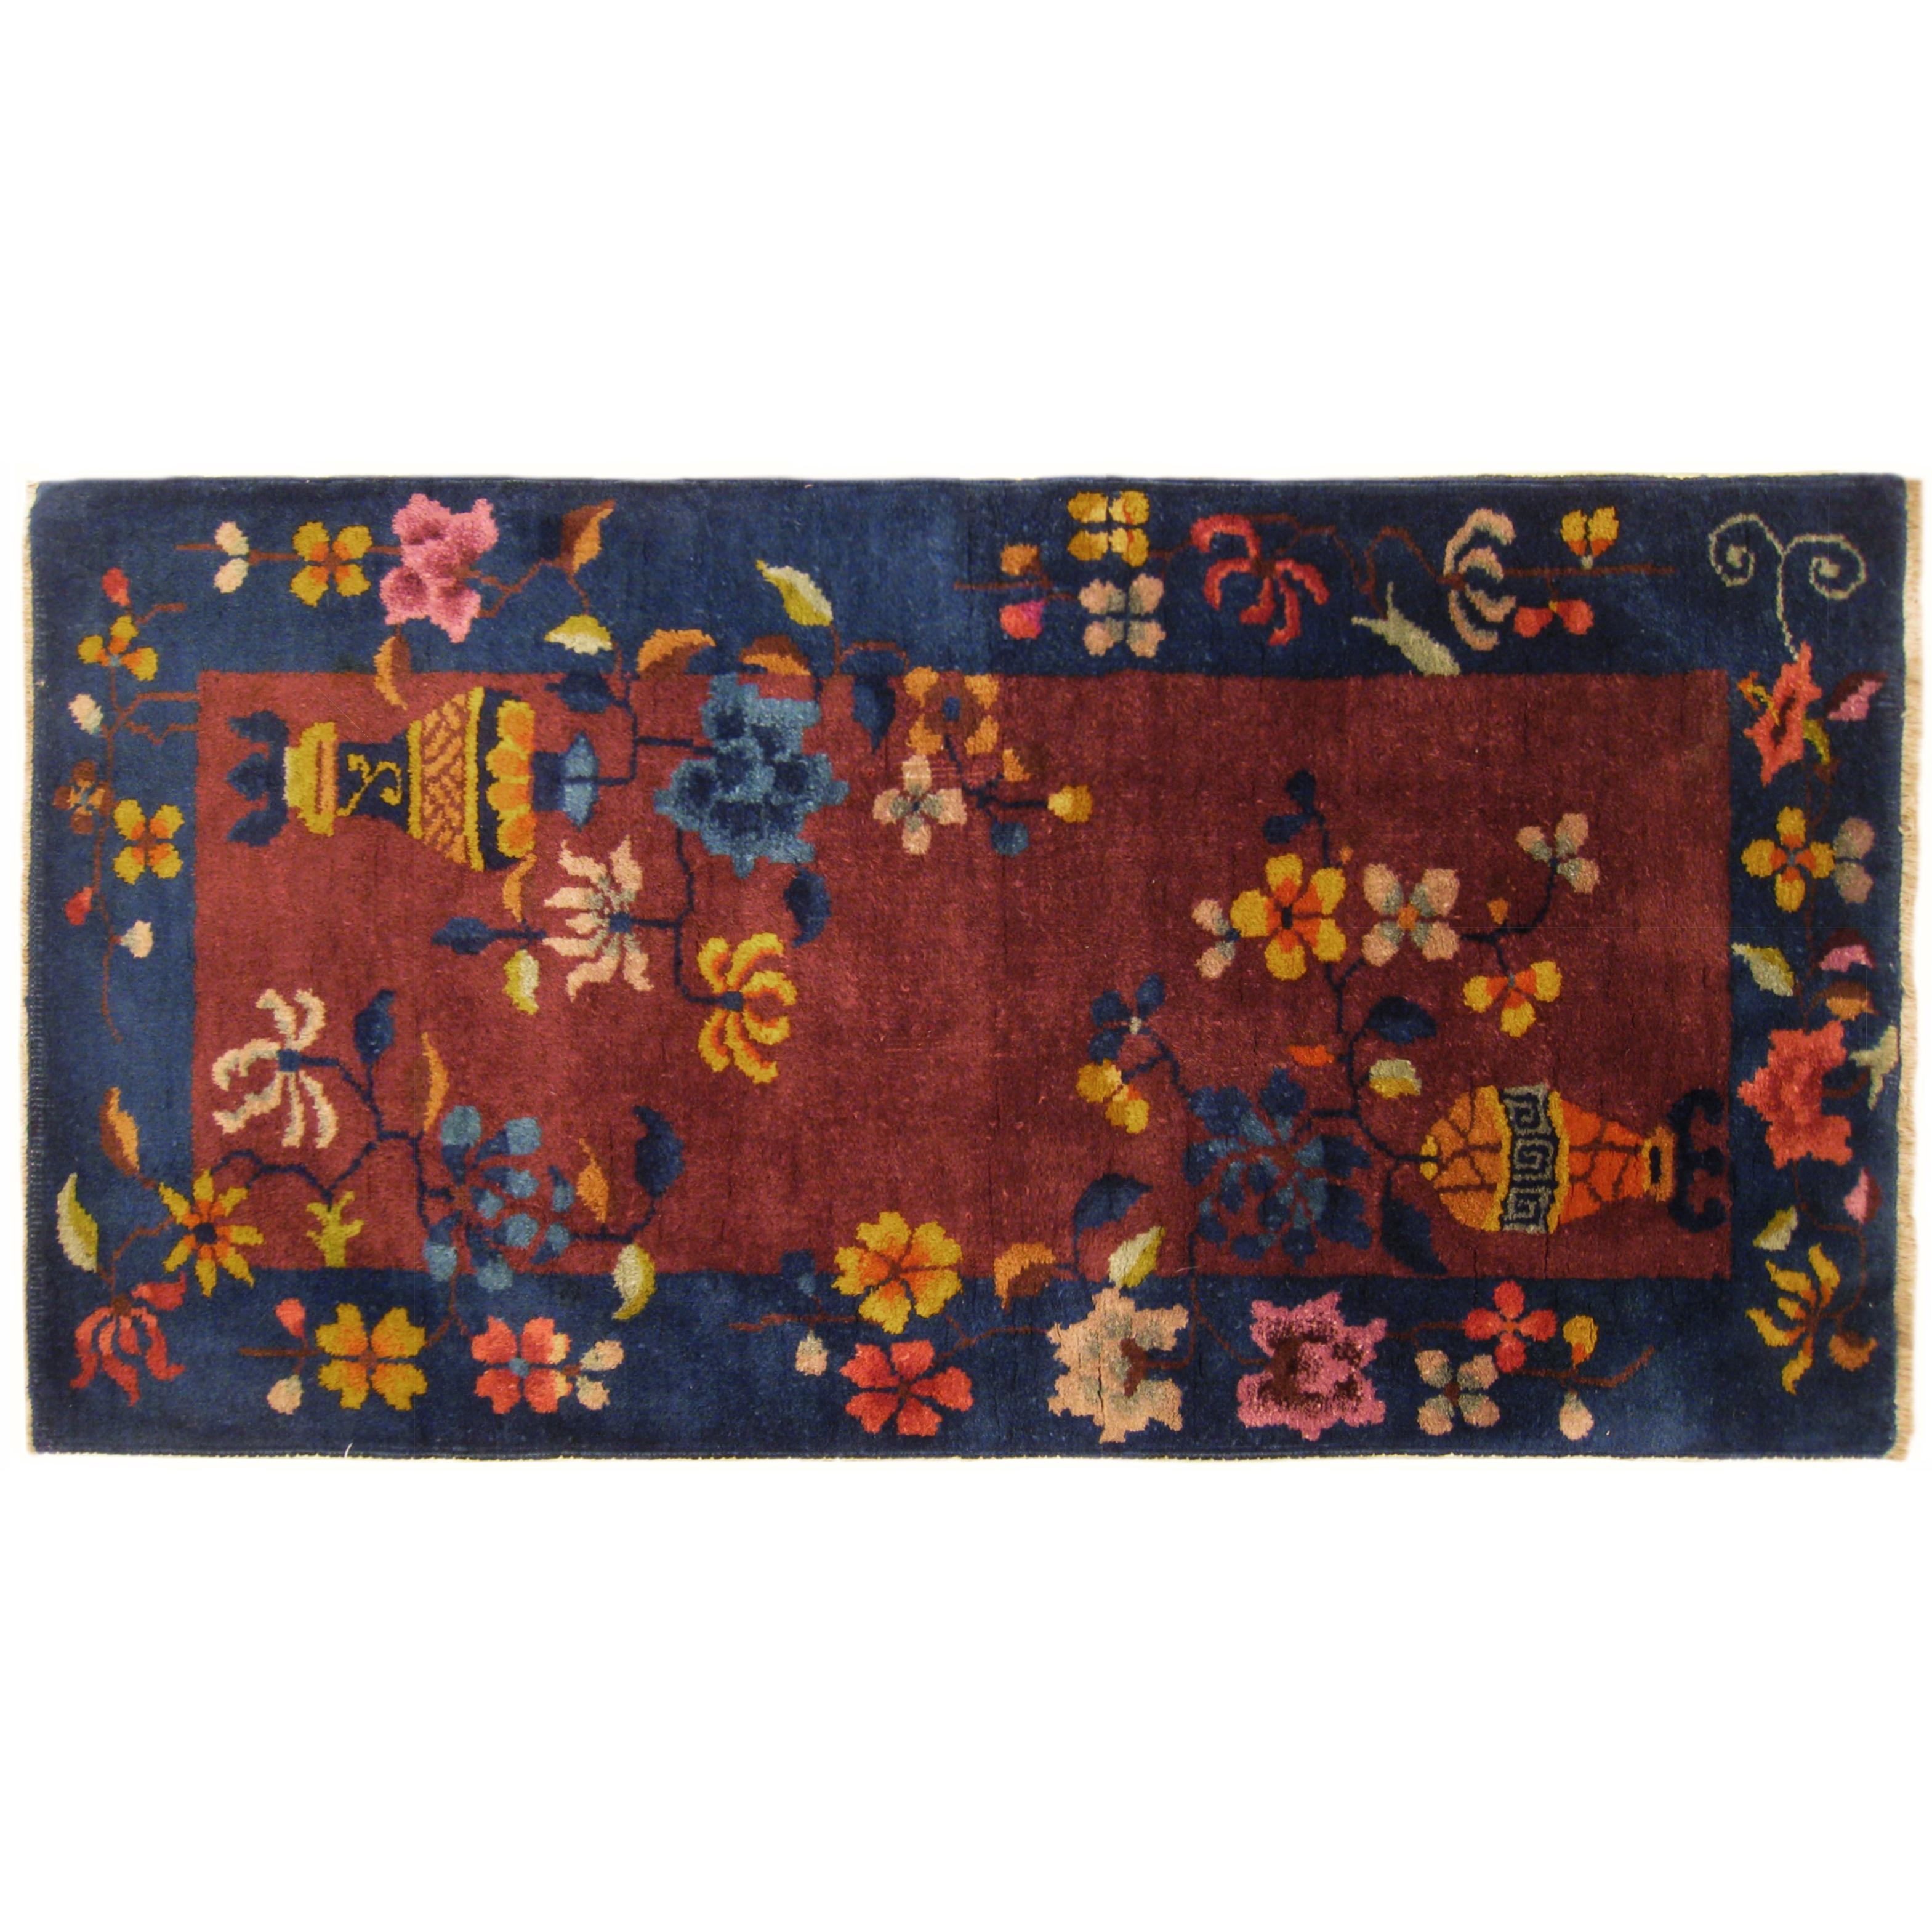 Antique Chinese Art Deco Oriental Rug, in Small Size with Vase and Flower Motifs